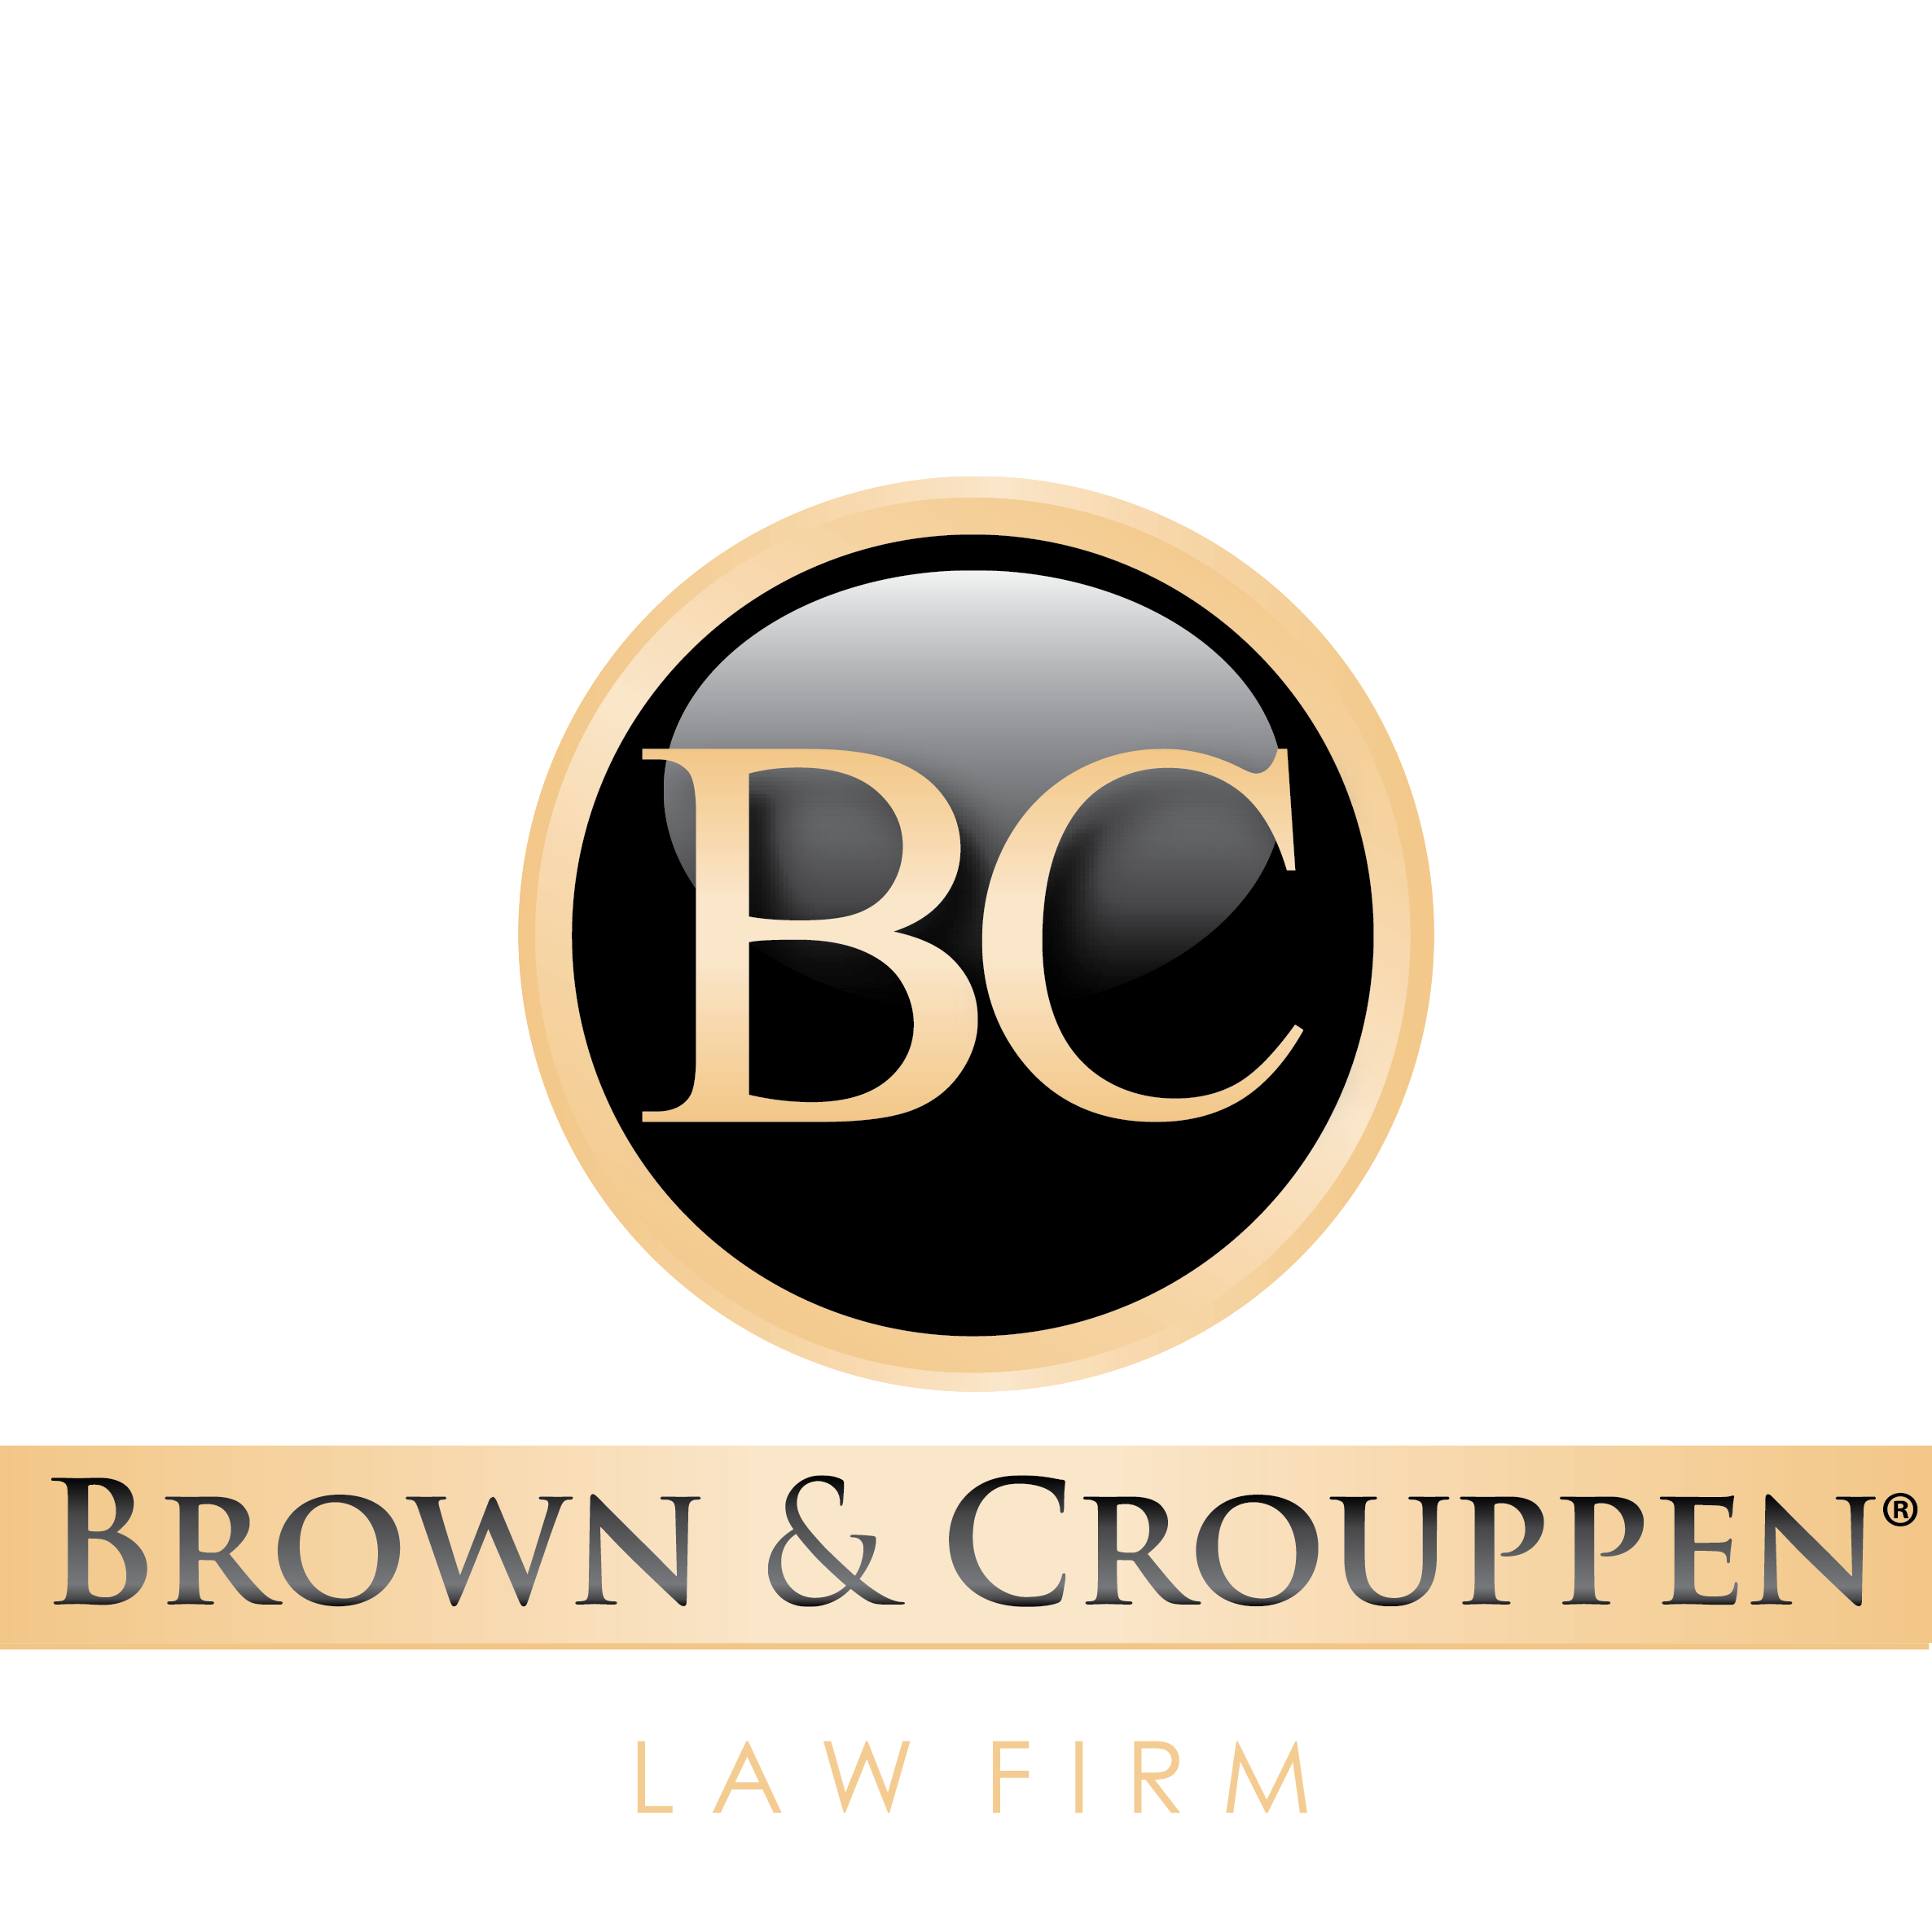 Brown and Crouppen Law Firm - Kansas City, MO 64108 - (816)777-7777 | ShowMeLocal.com